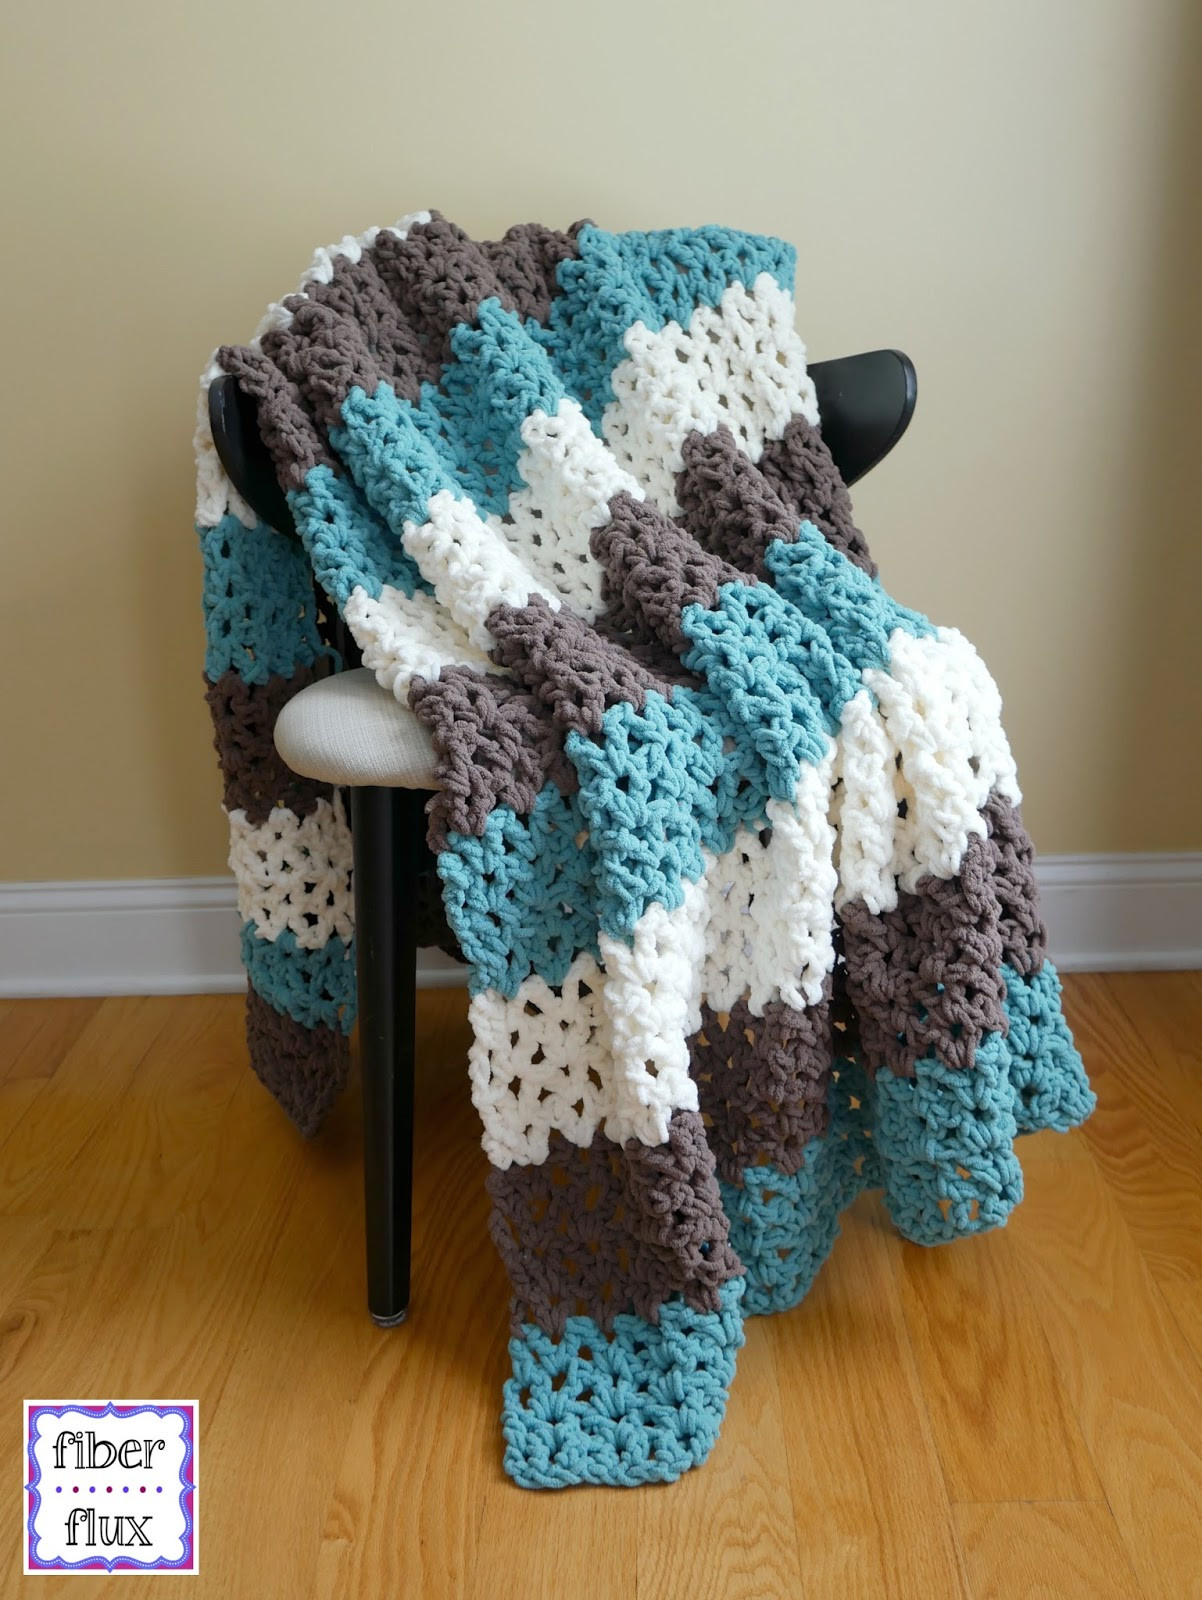 Crochet Throw Blanket Awesome Fiber Flux Free Crochet Pattern Family Room Throw Of Great 44 Pics Crochet Throw Blanket